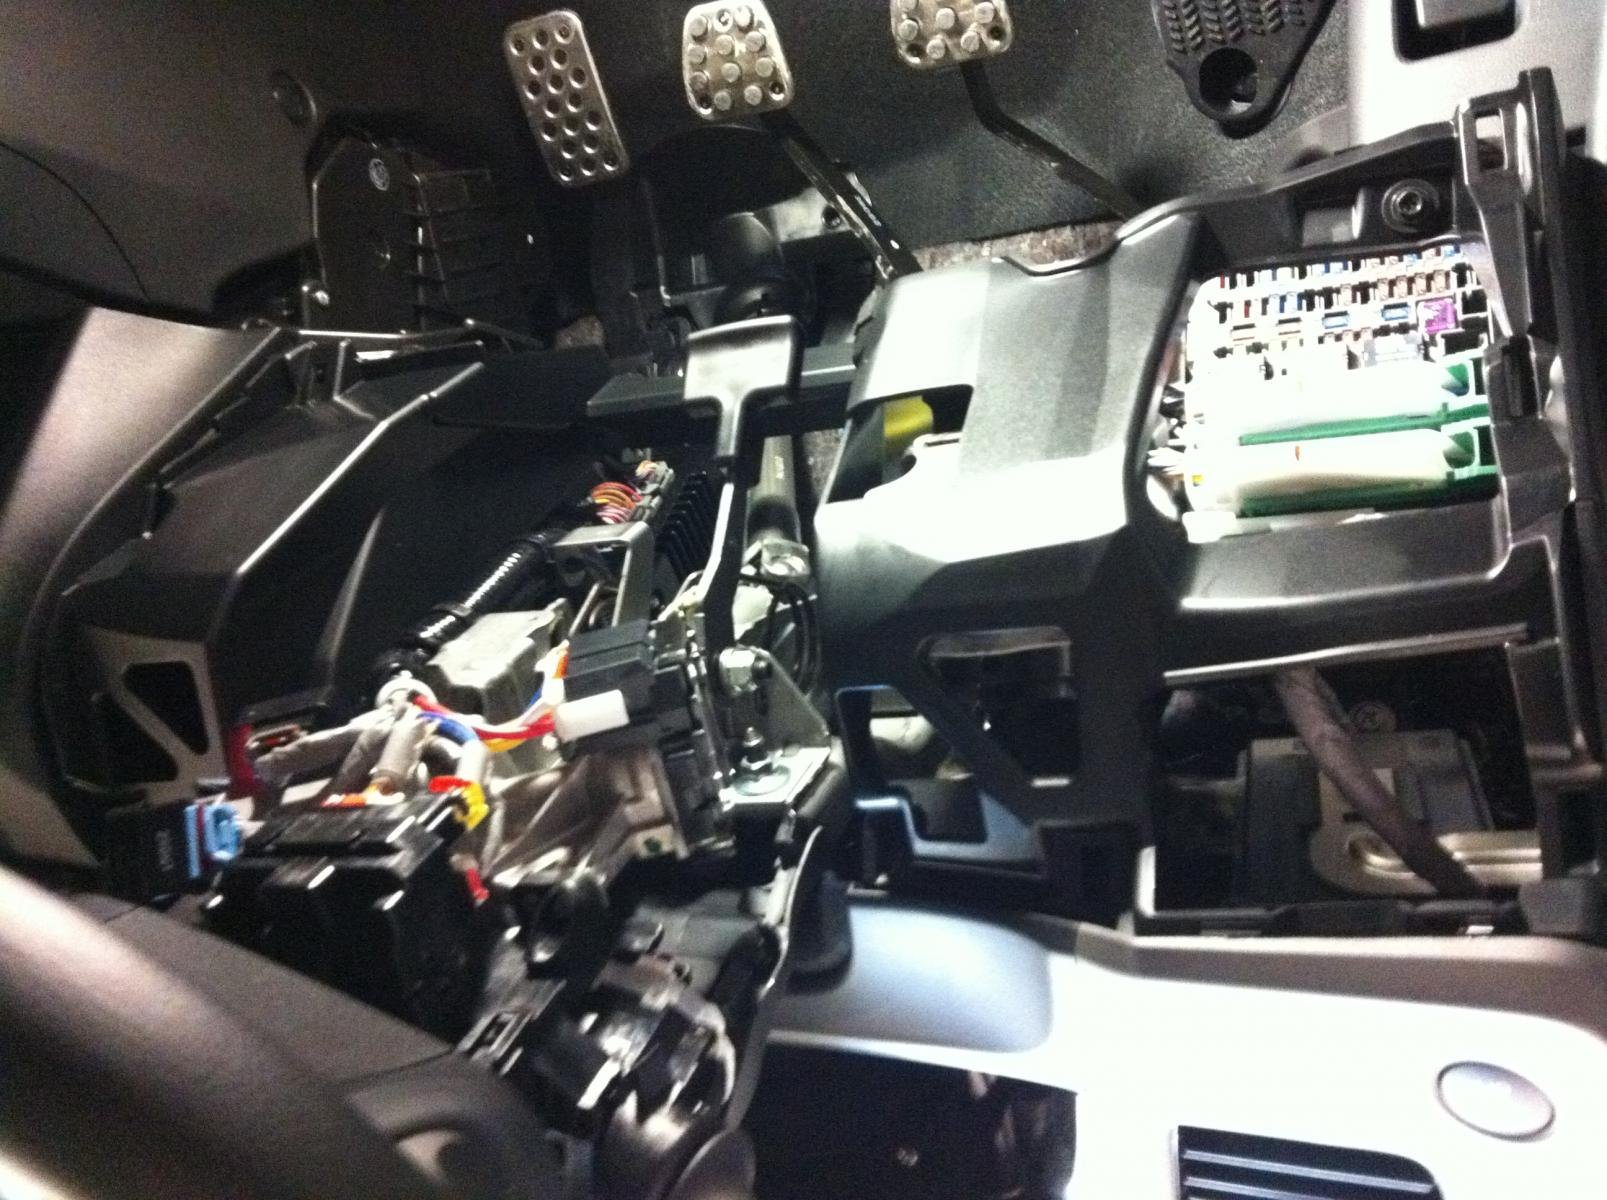 2012 honda accord wiring diagram er for hospital management system with relationship civic remote start